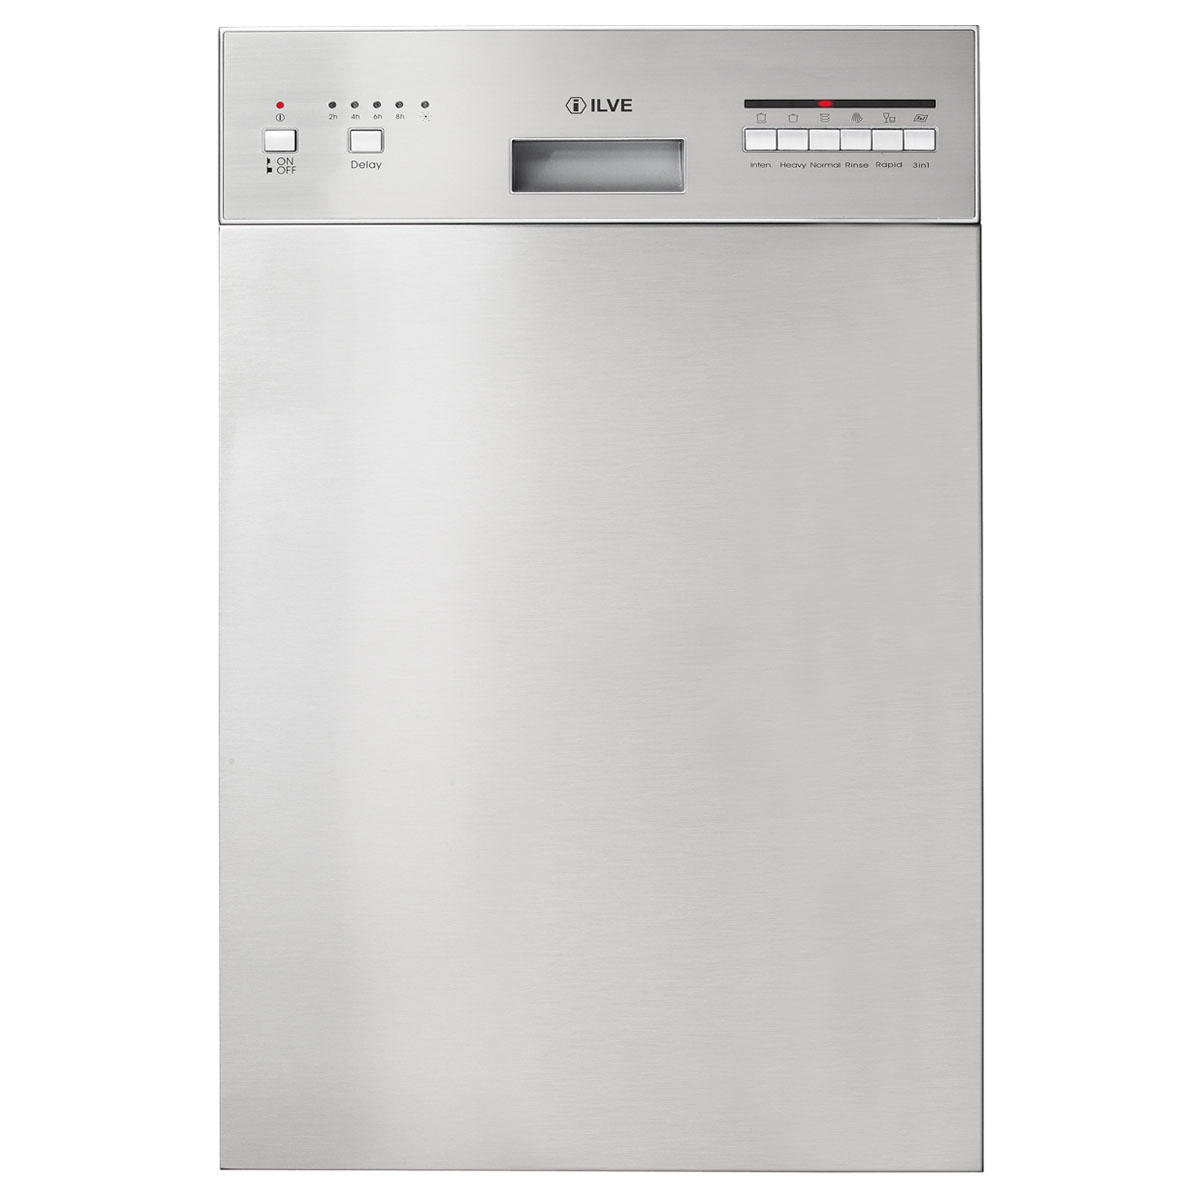 Ilve IVDBI458 445mm Fully-integrated Dishwasher